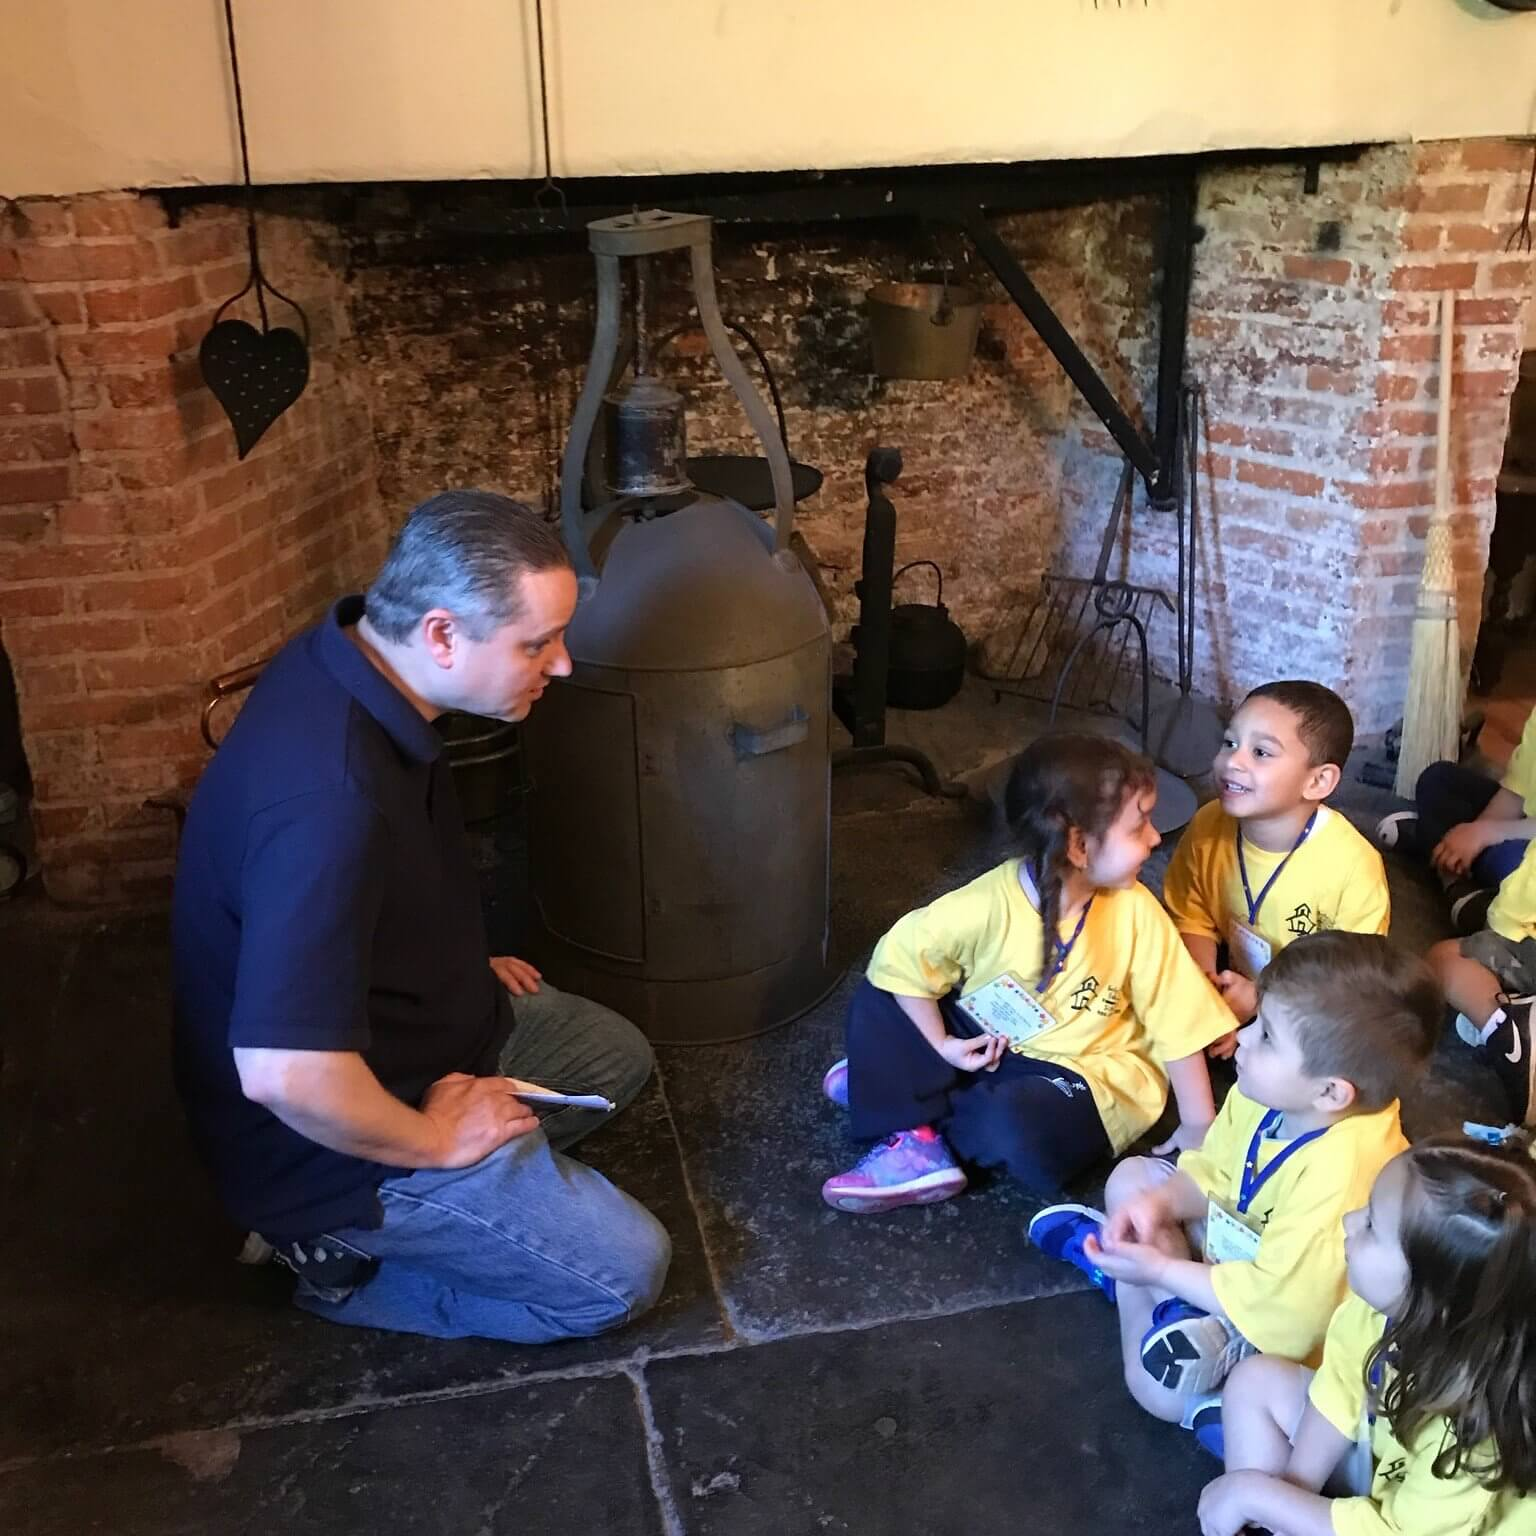 A group of young children wearing yellow t-shirts seated on the hearth in front of the antique fireplace. They are talking with a male curator.